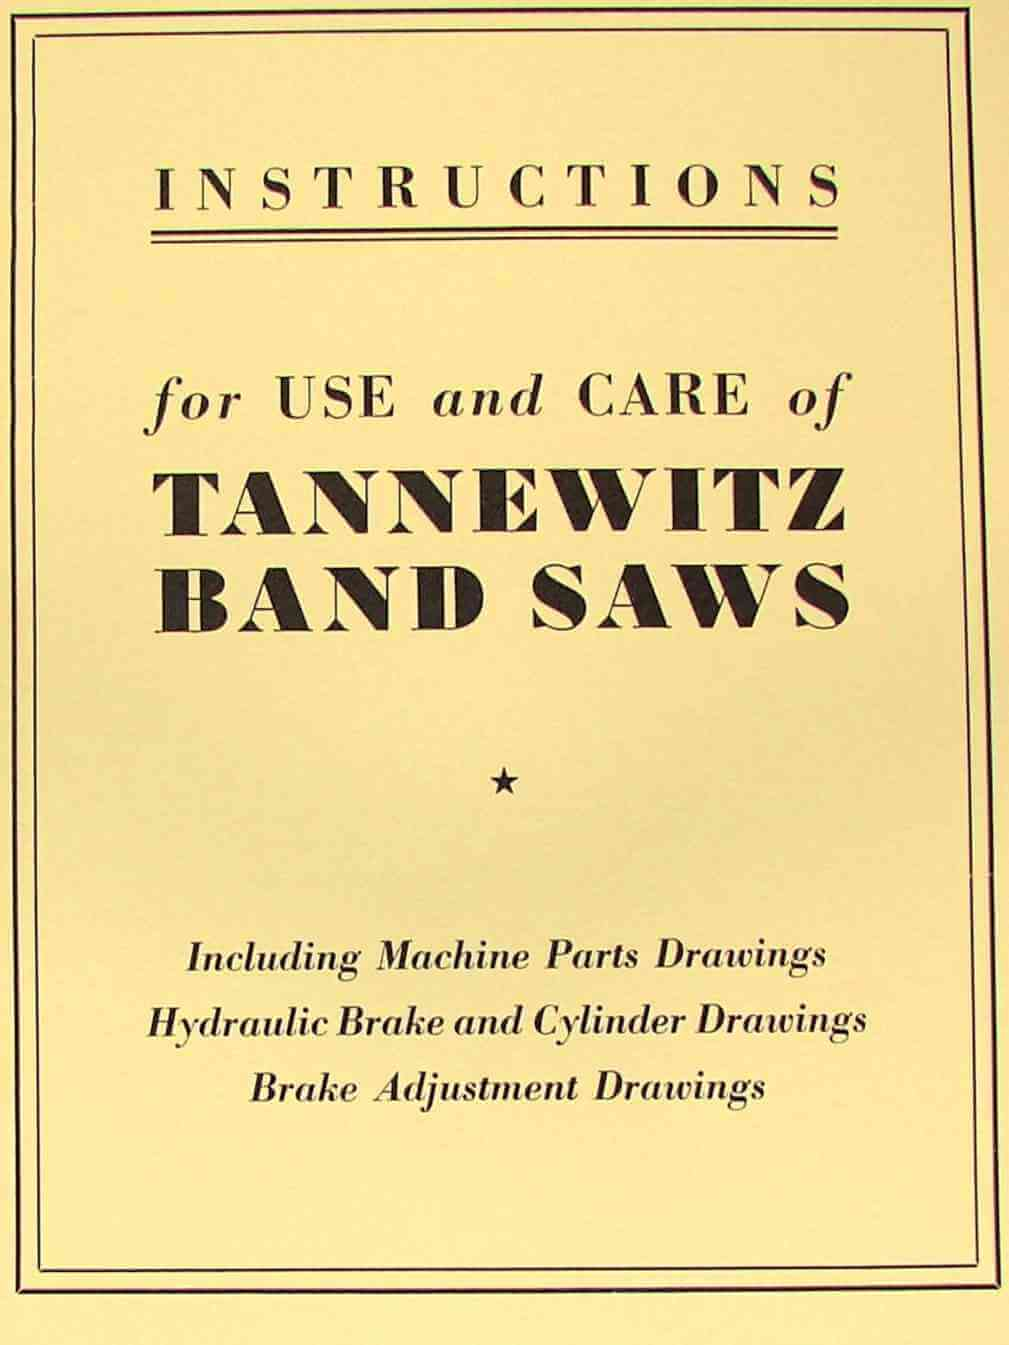 TANNEWITZ GH amp GHE 36 quot Band Saw Operator s amp Parts Manual